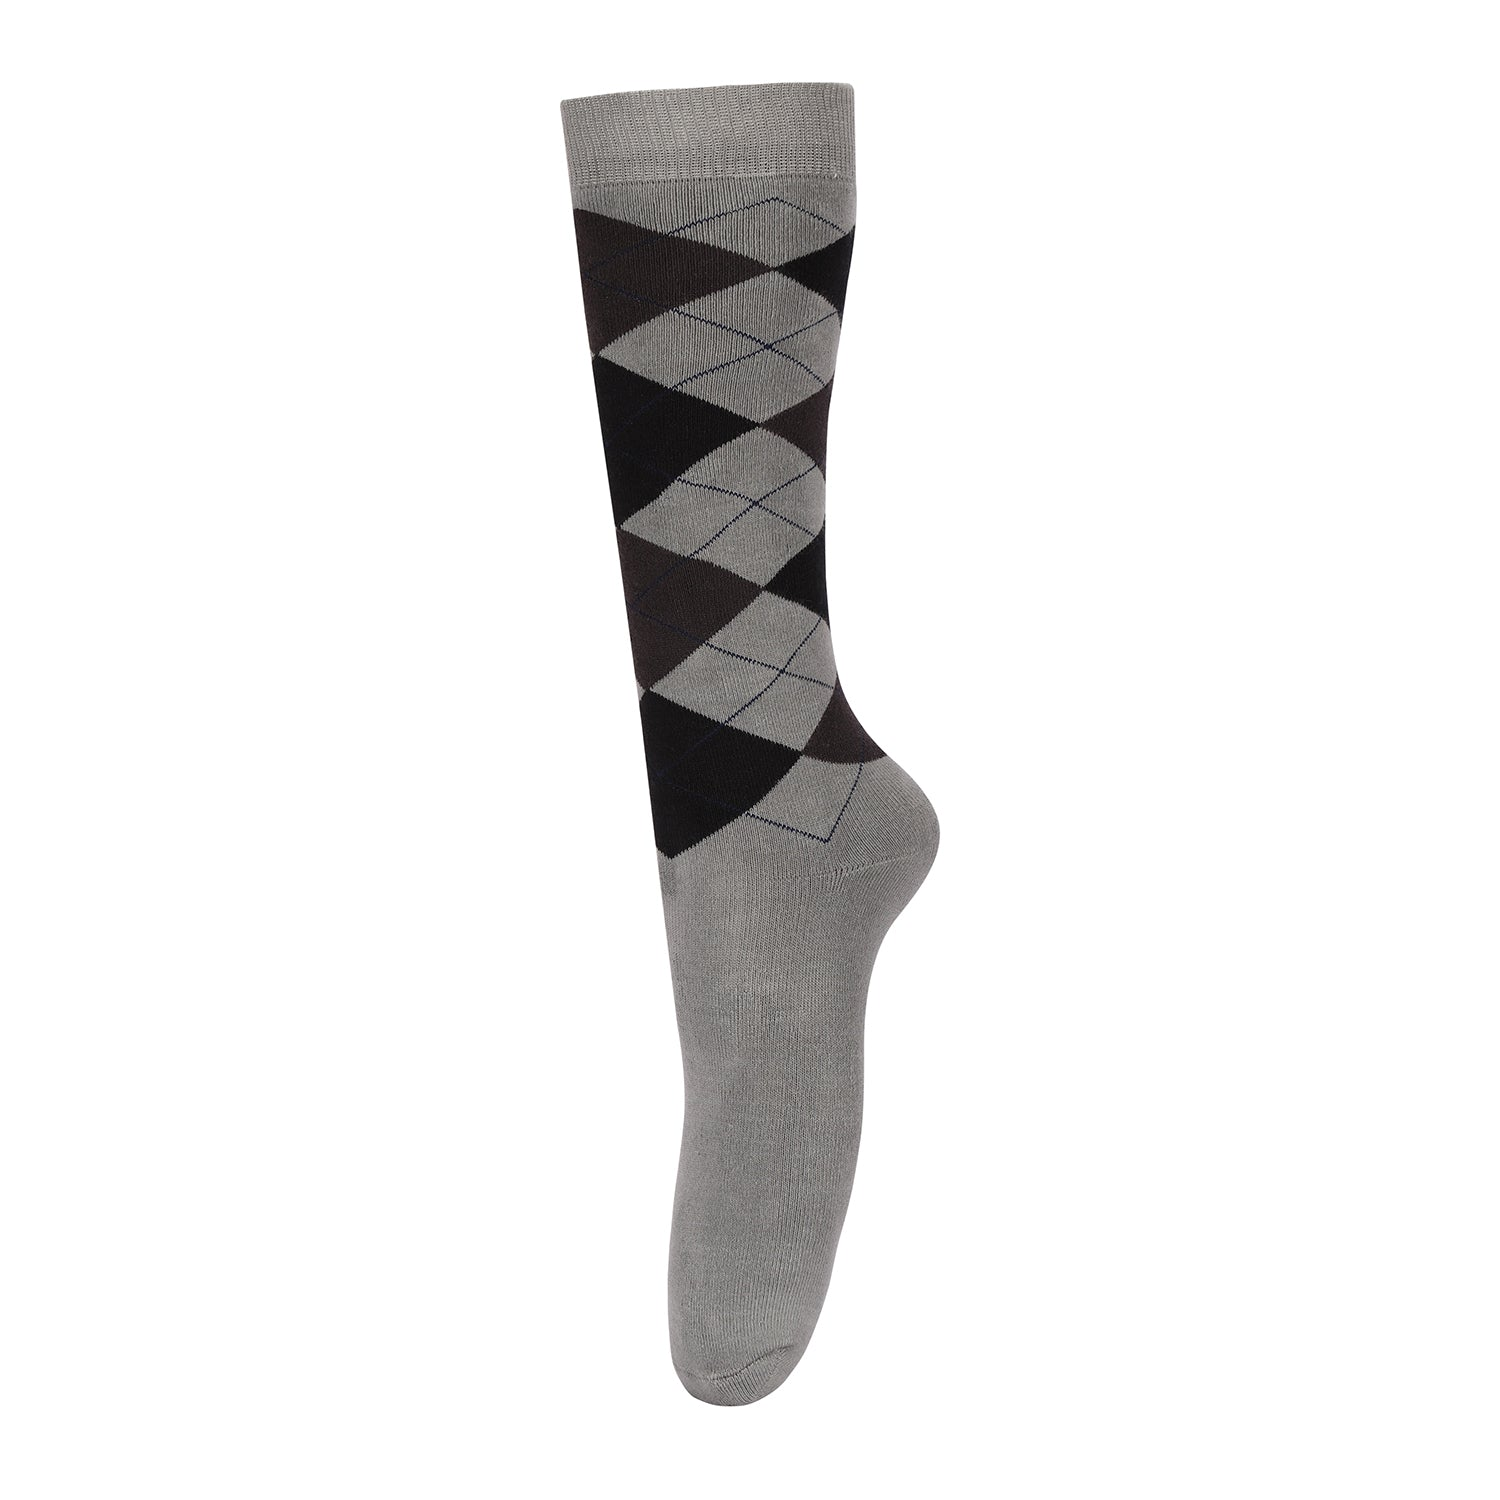 TUFFRIDER ARGYLE WINTER SOCKS_5471